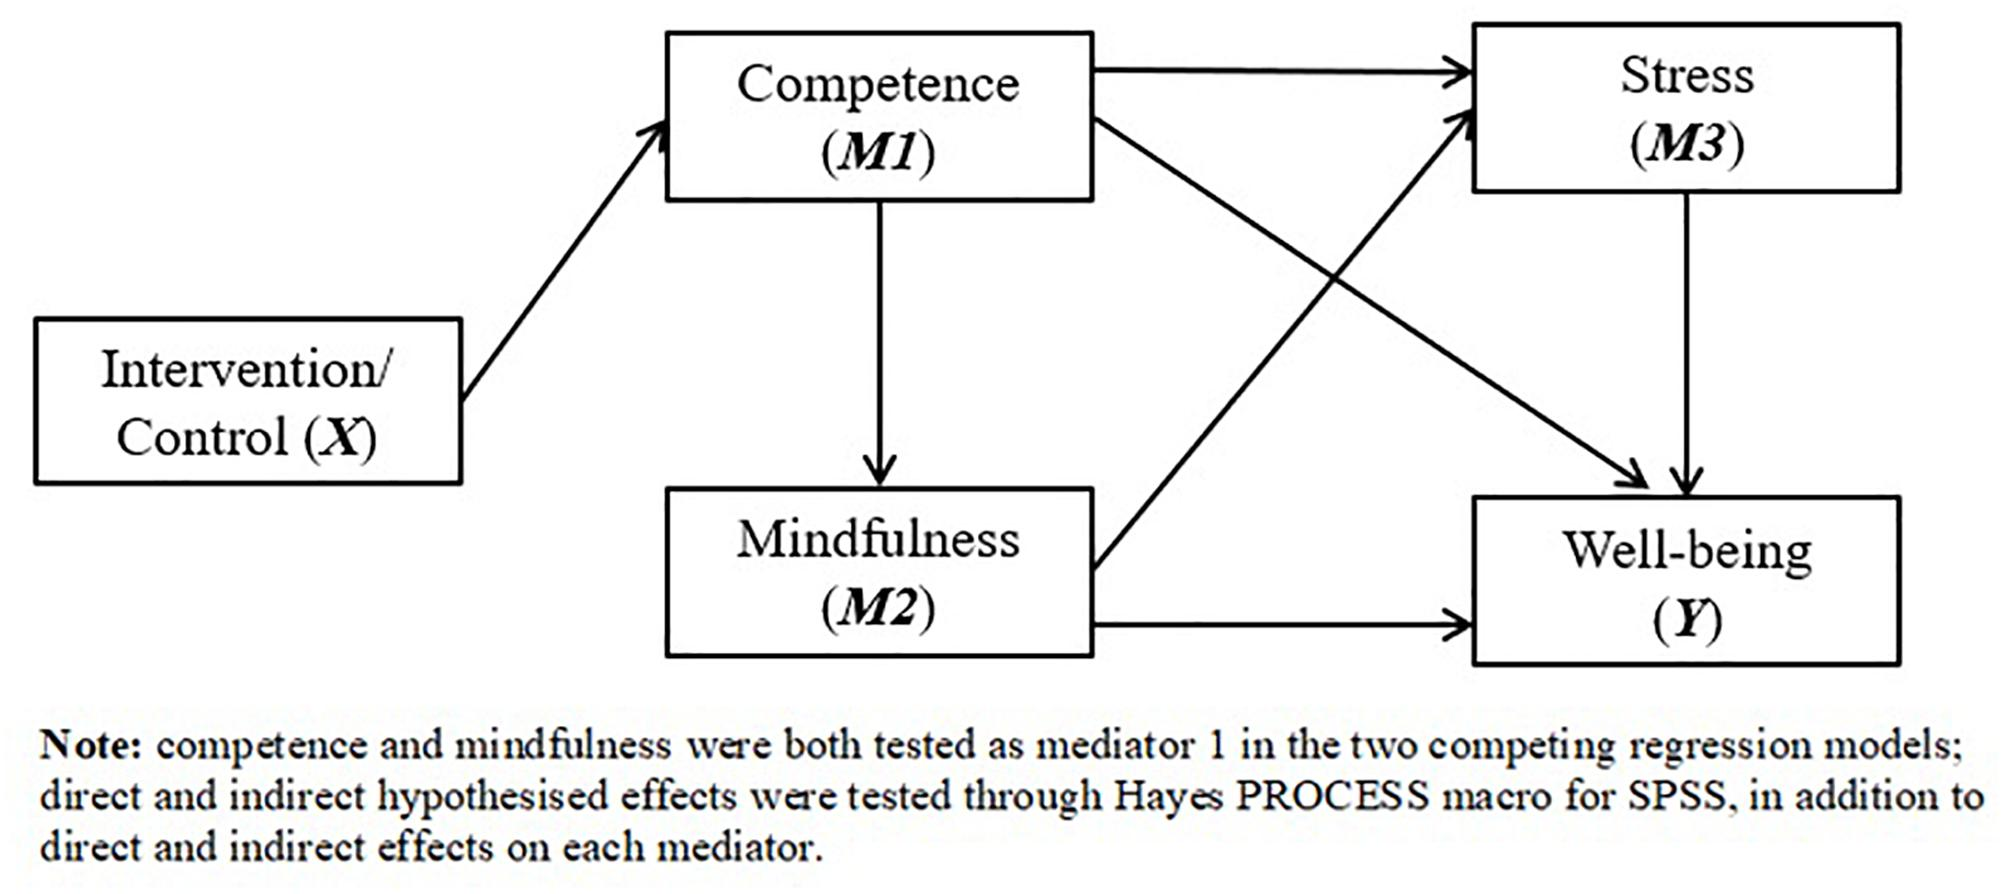 Frontiers | Effects of a Mental Health Intervention in